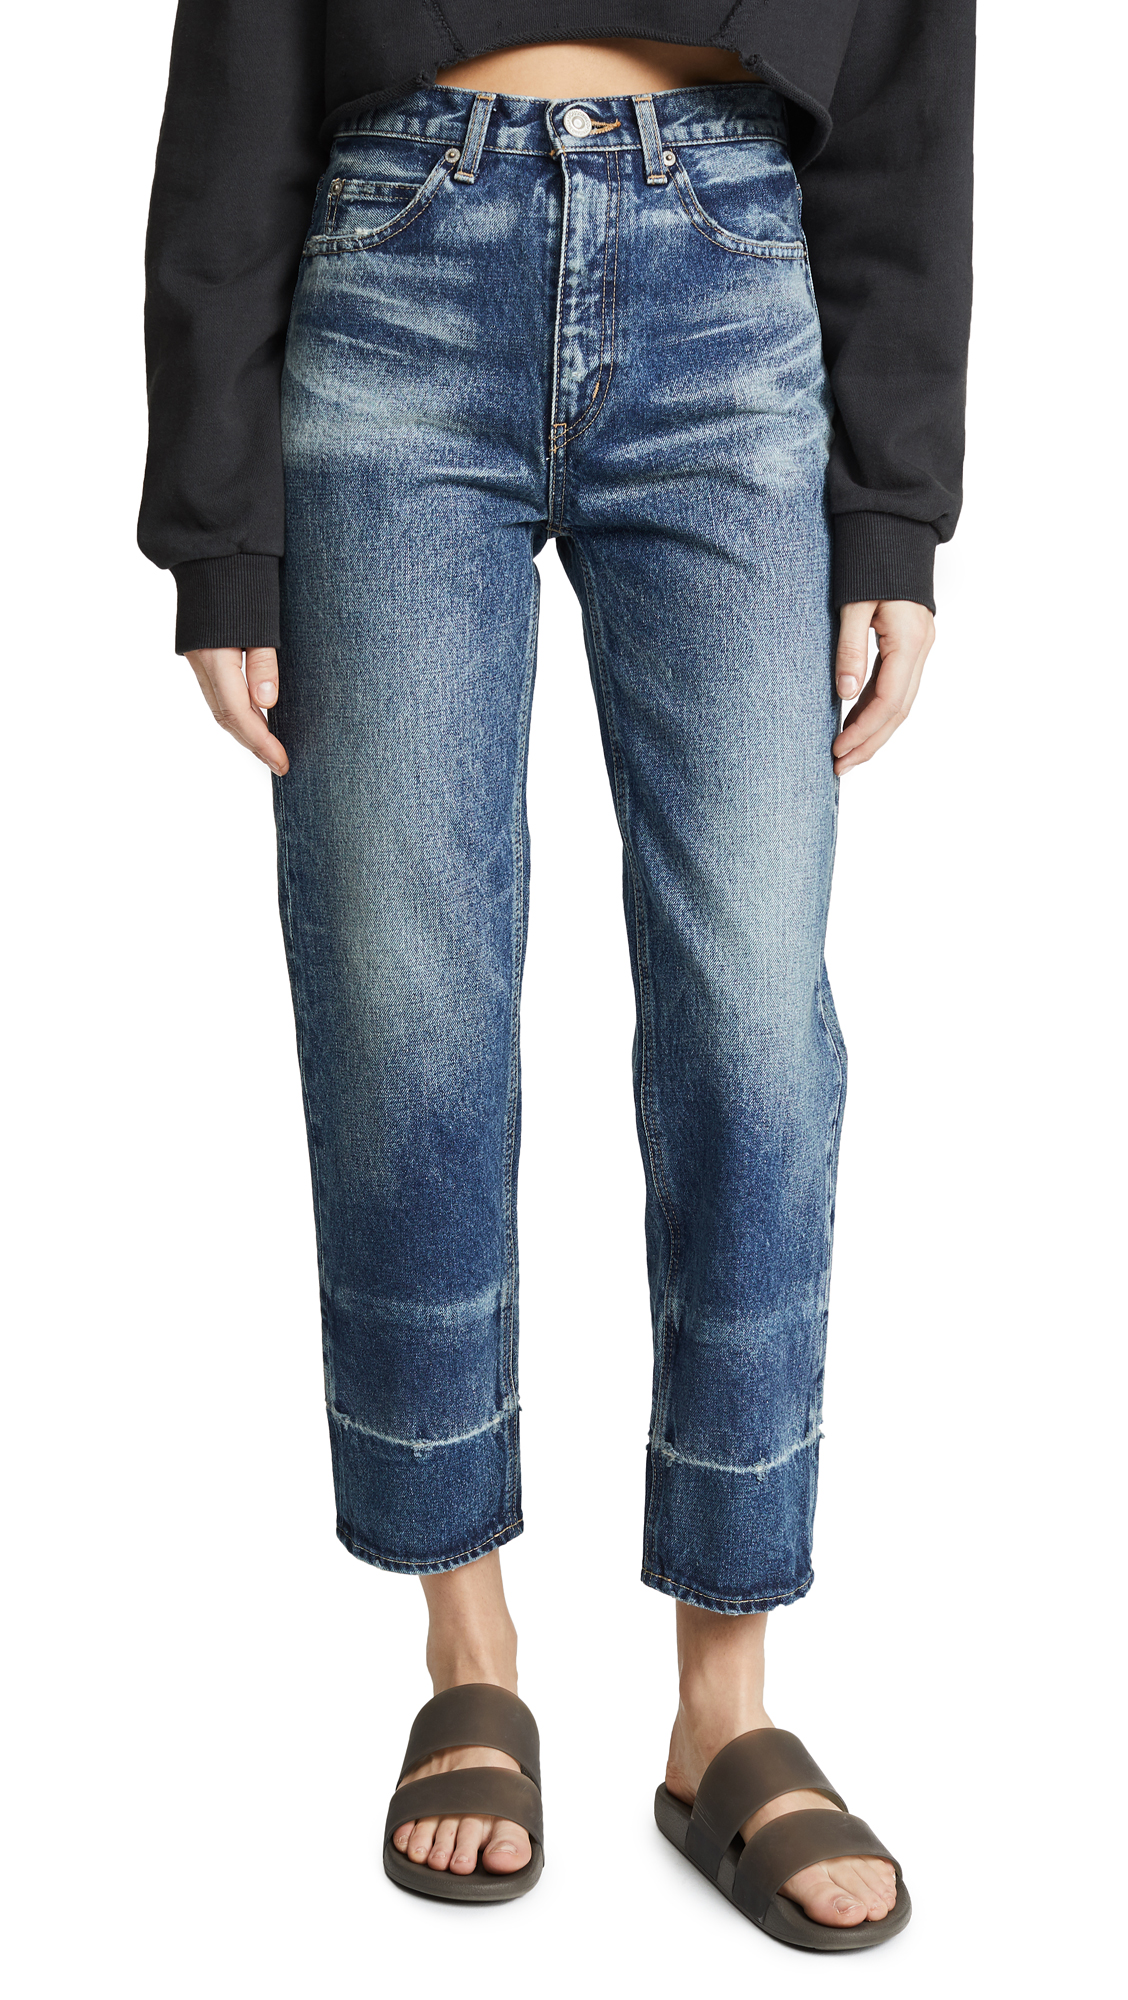 MOUSSY VINTAGE MV Orin JW Tapered Jeans In Dark Blue